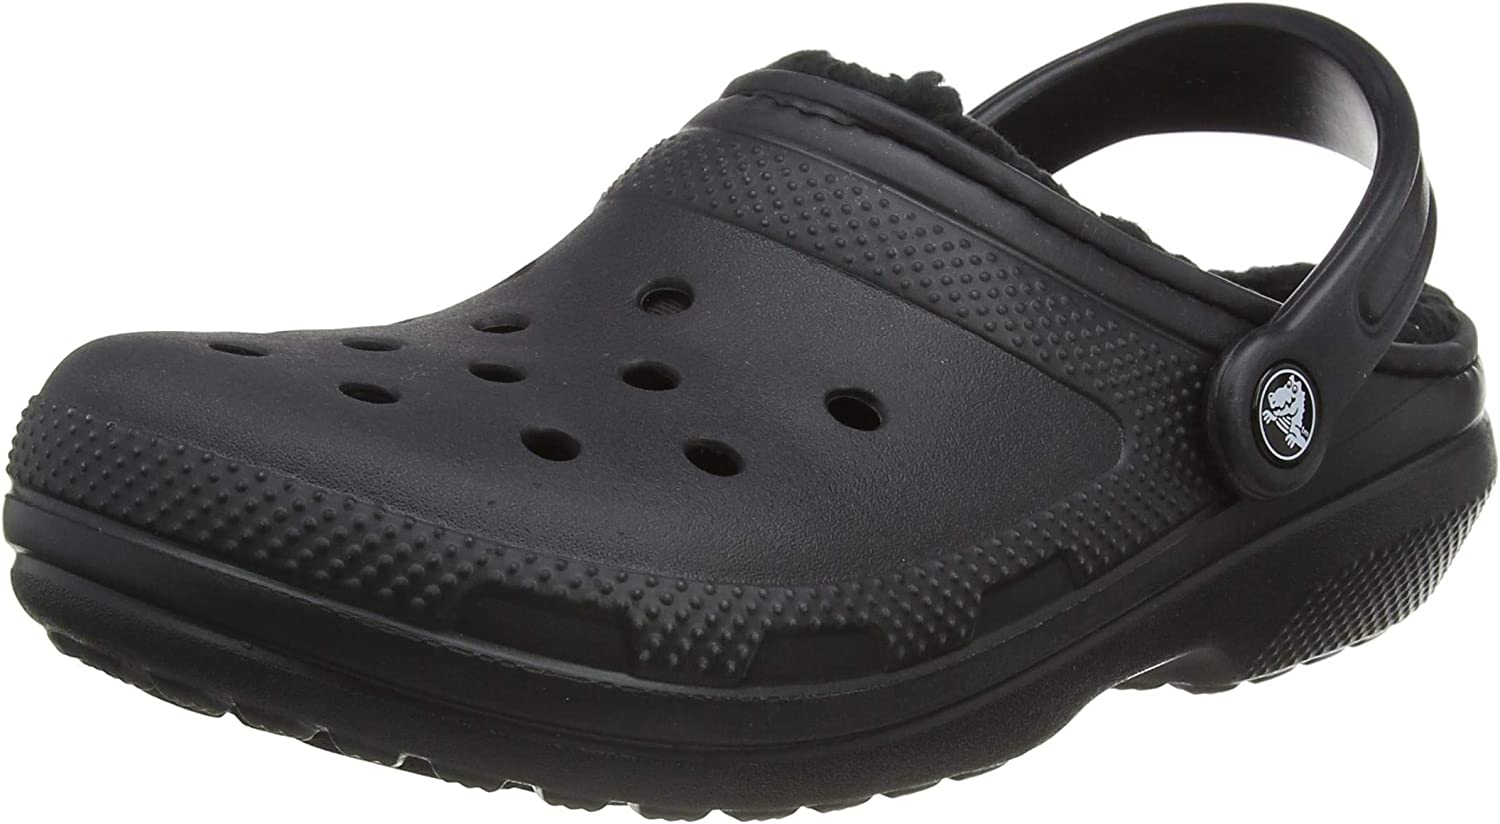 Crocs Classic Lined Clog | Warm and Fuzzy Slippers